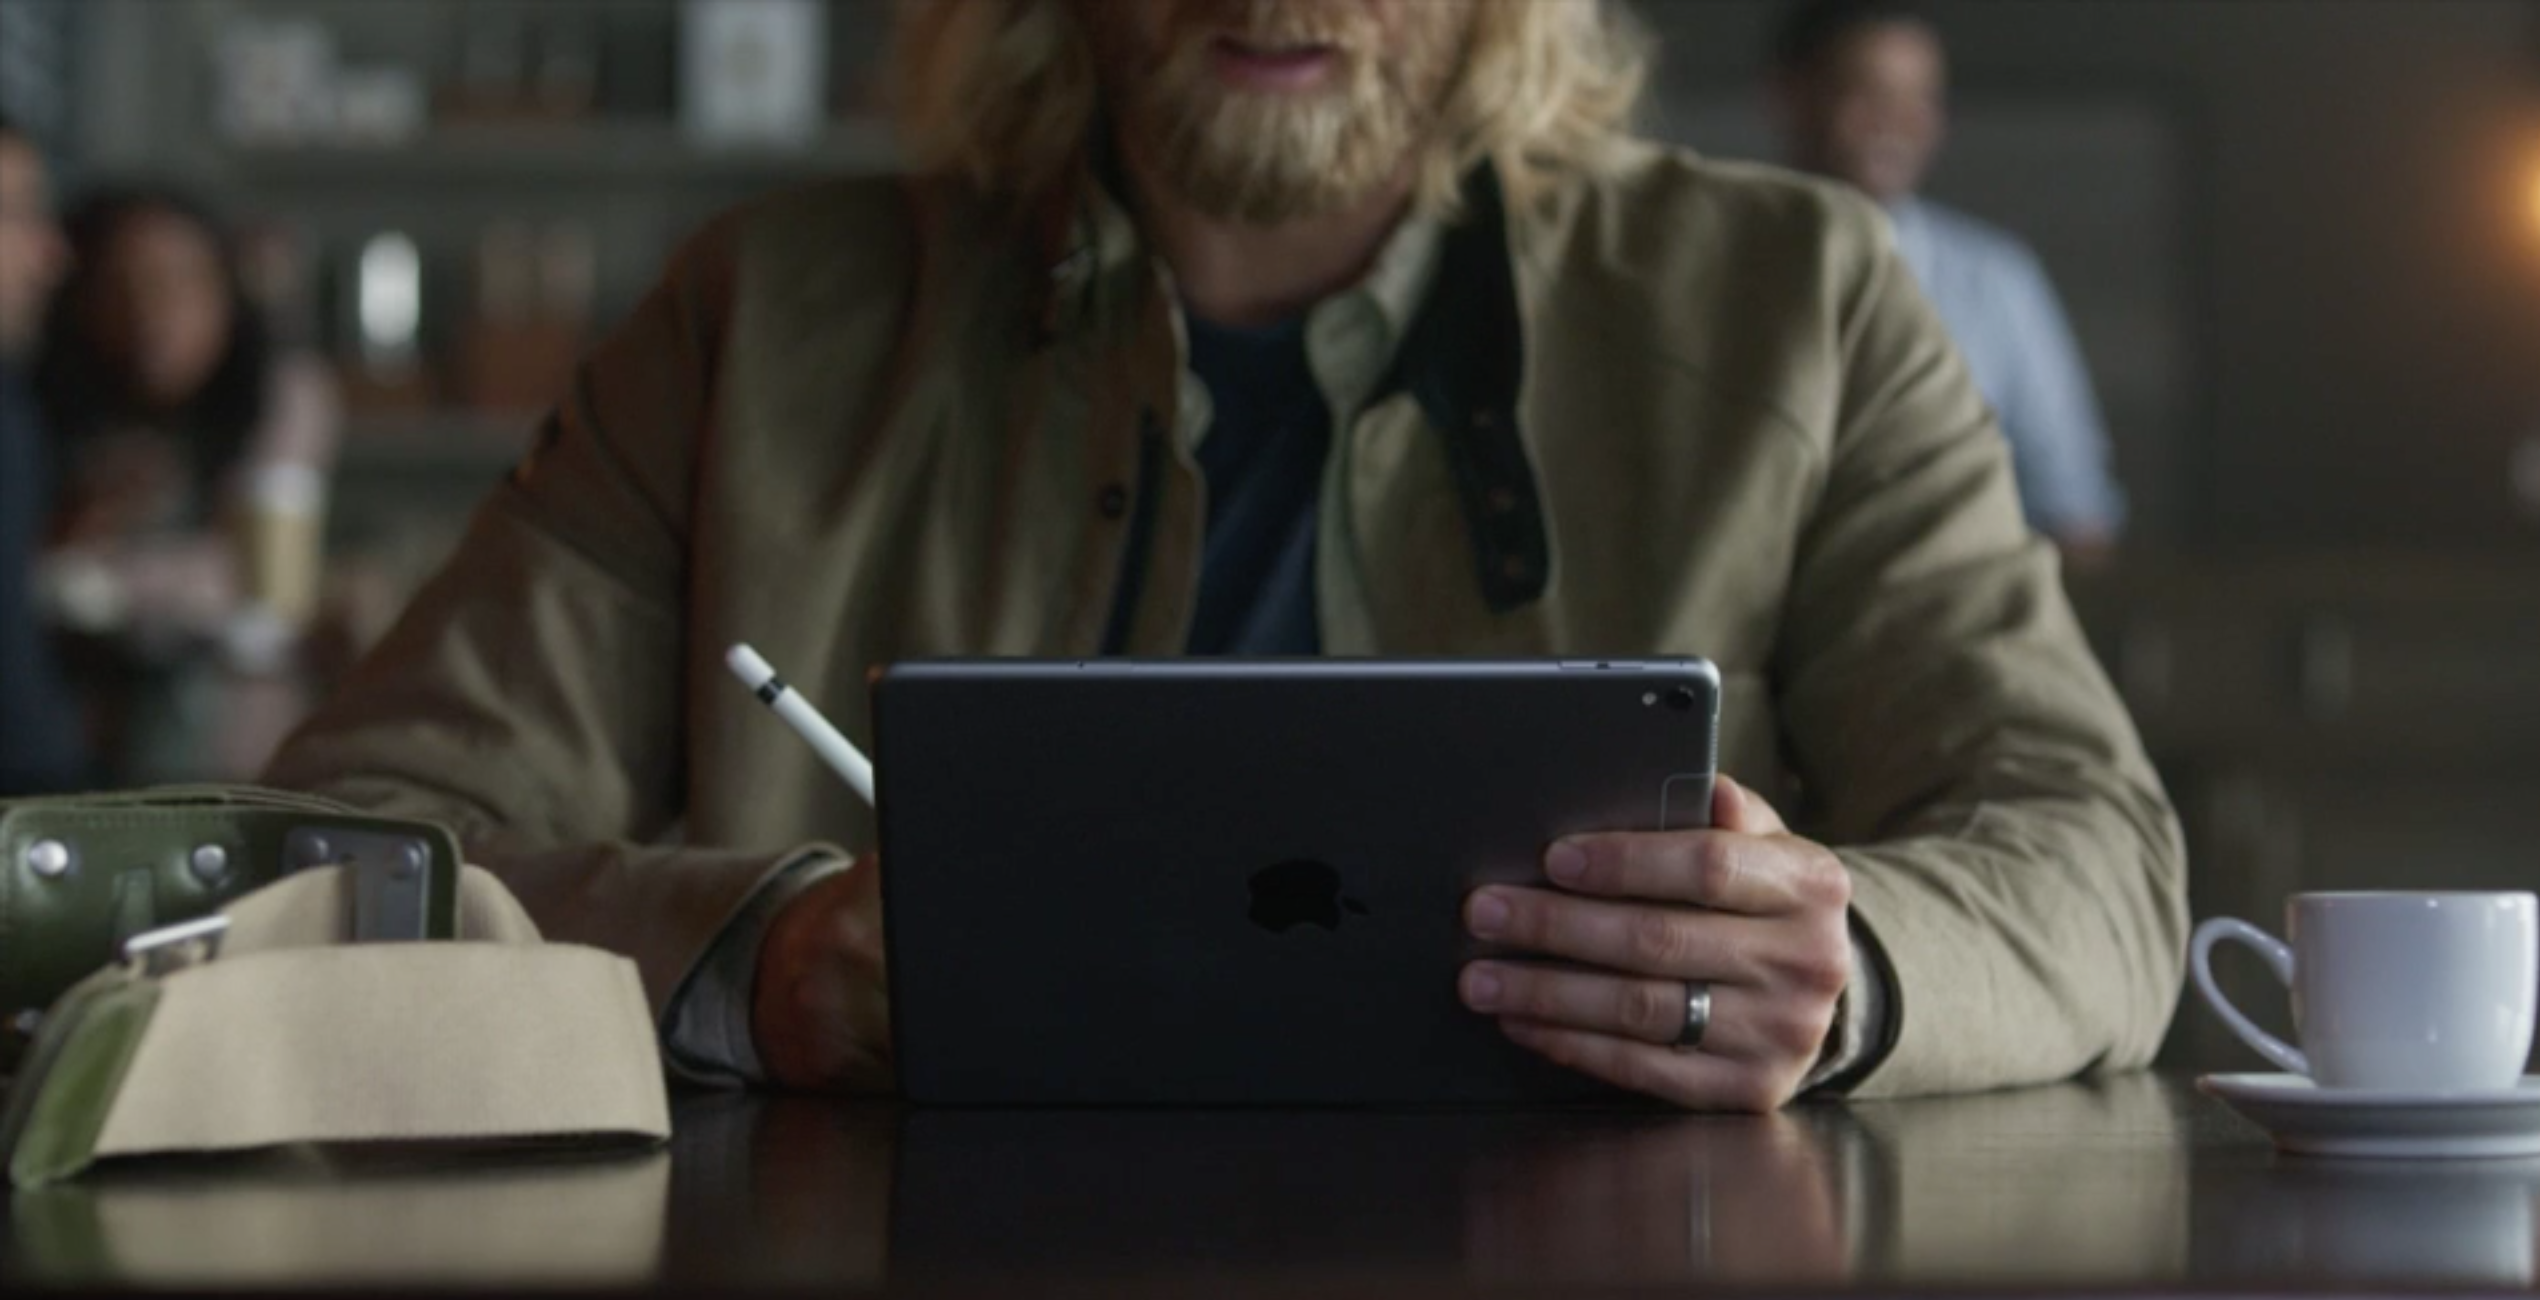 The new iPad Pro: the tablet that could